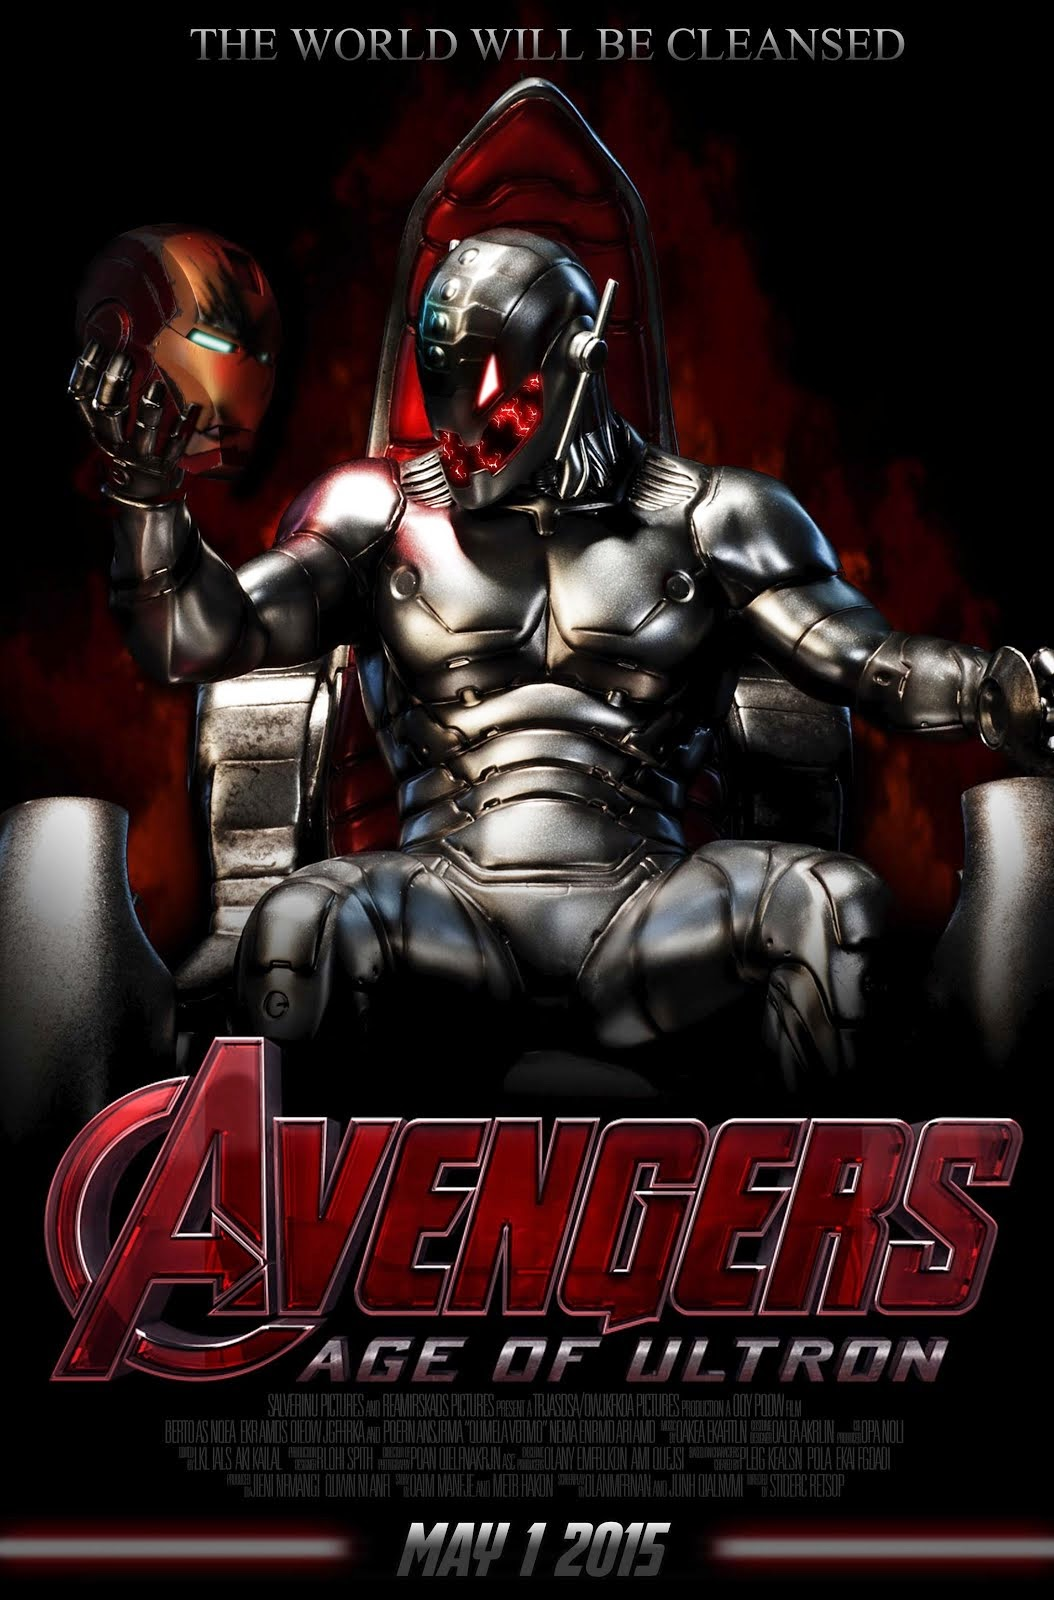 The AGE Of ULTRON COMETH!